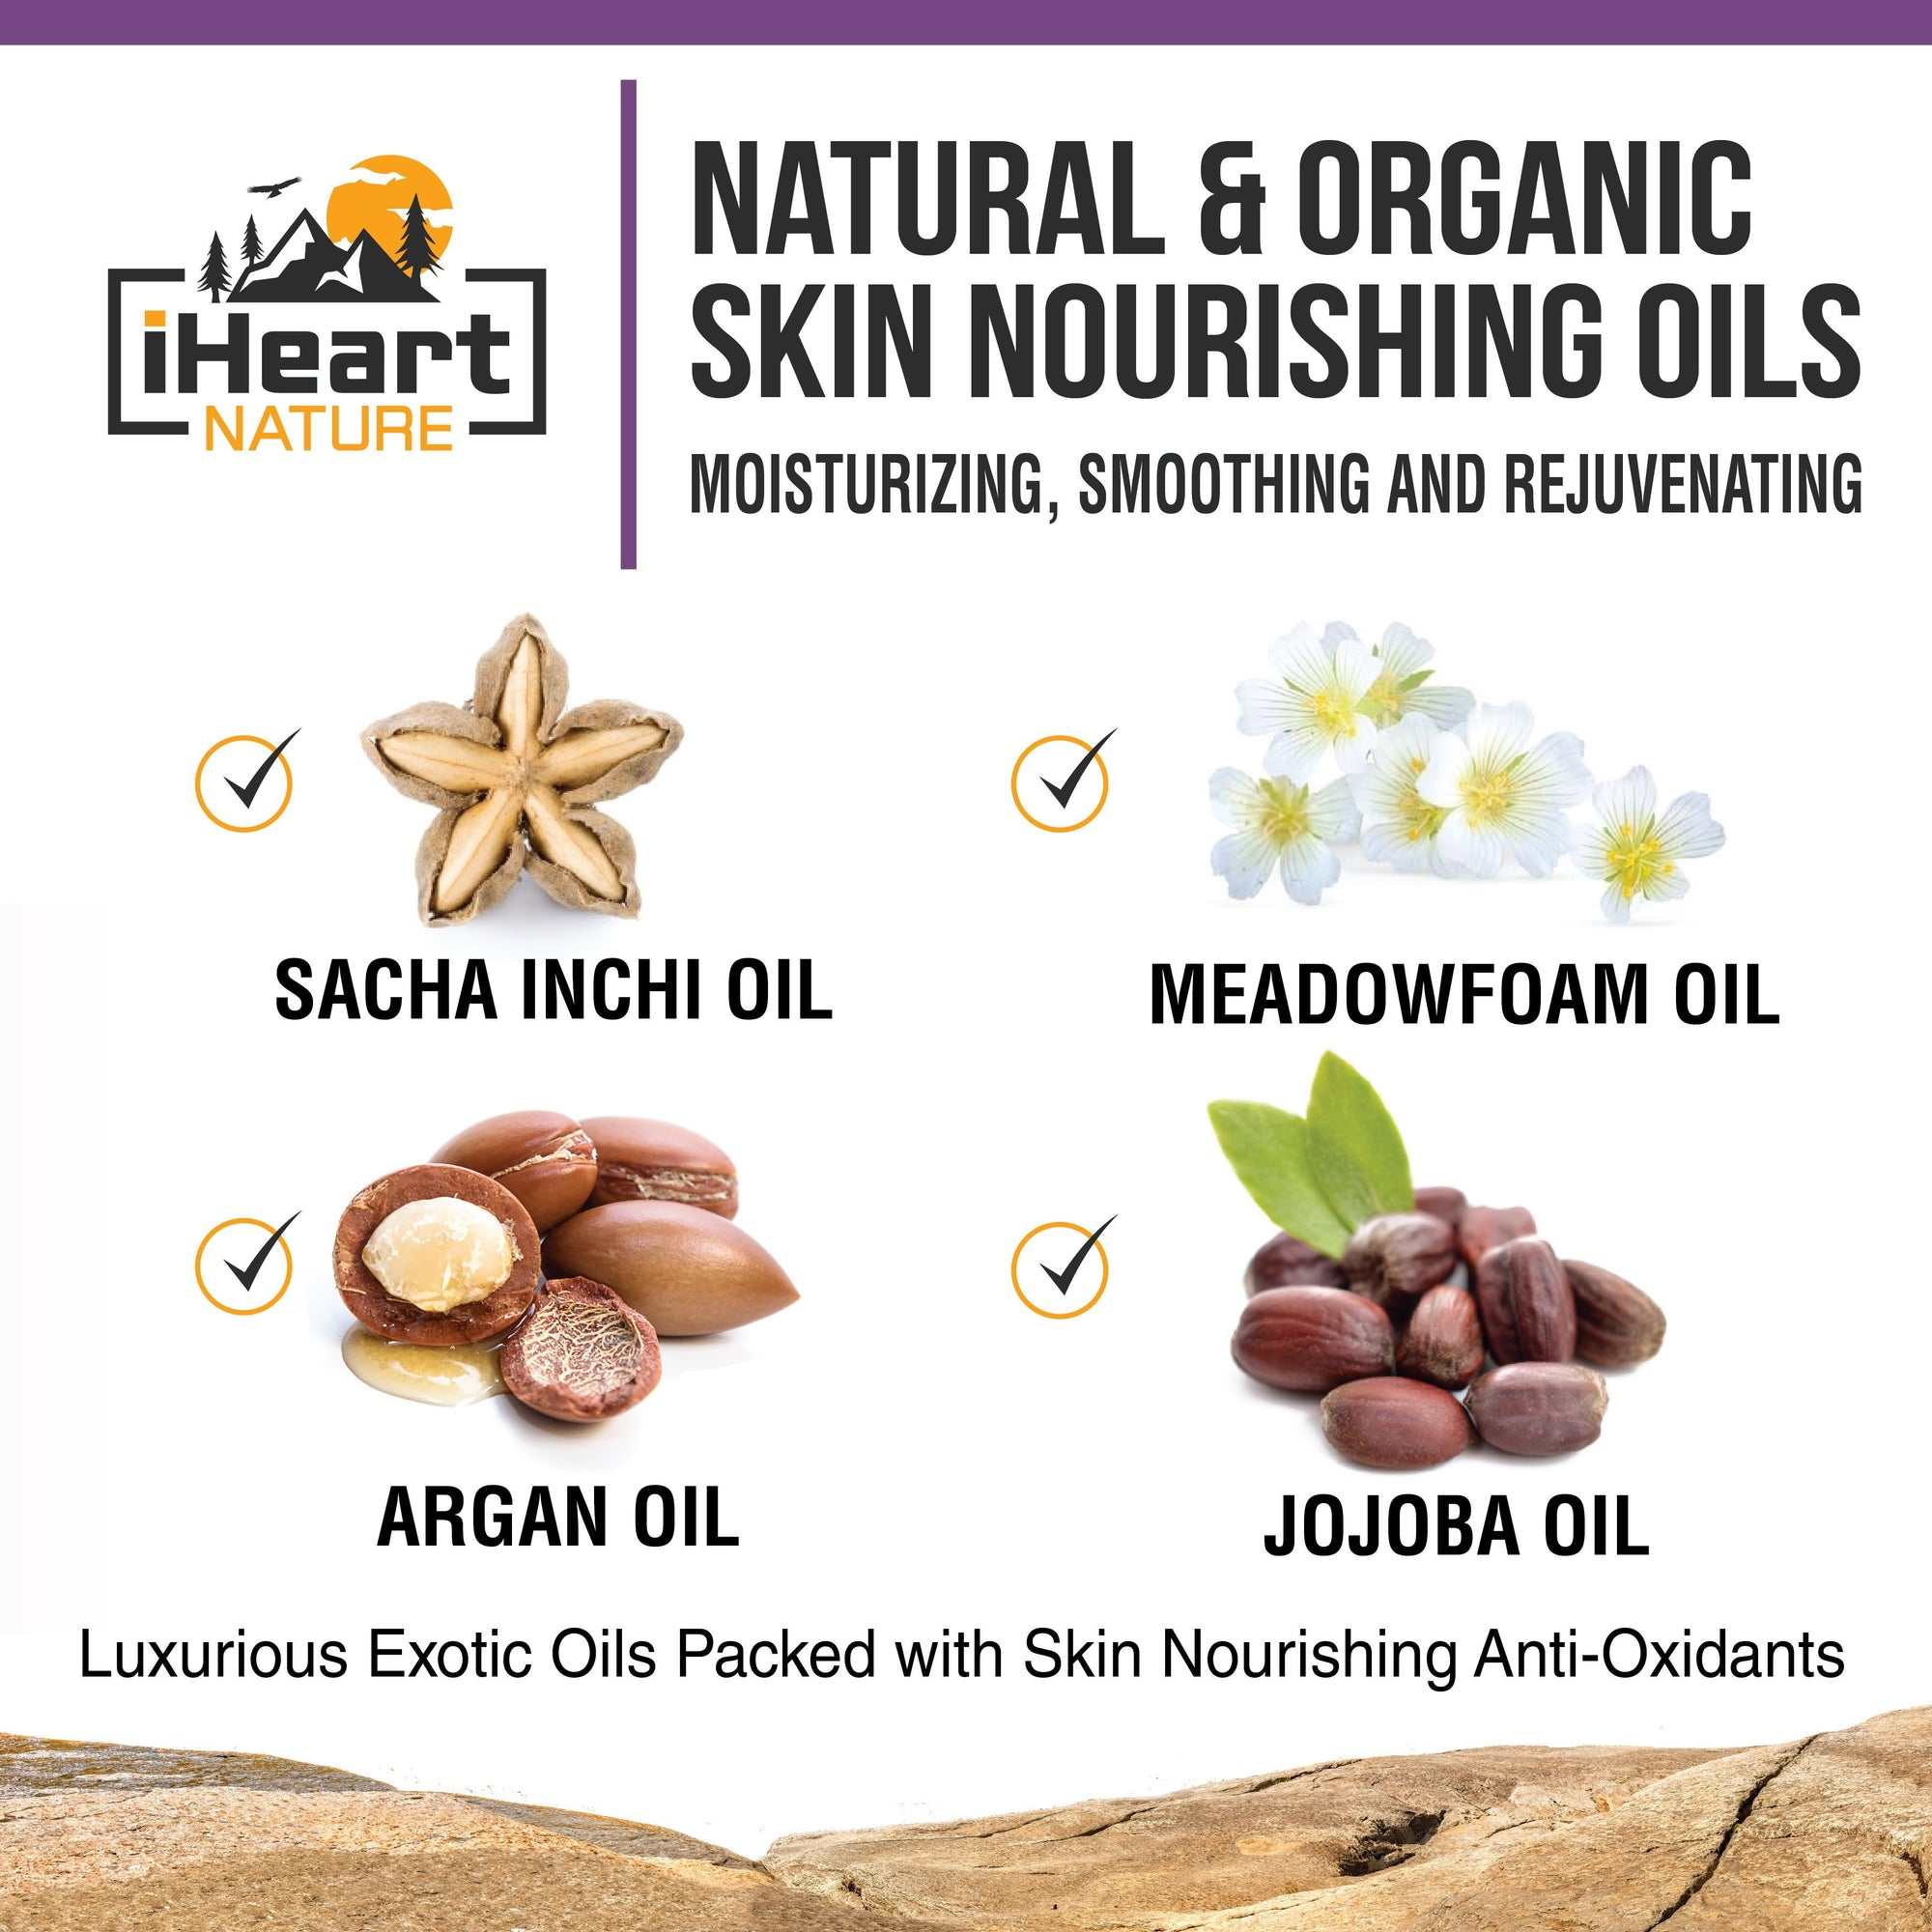 Lavender Cleansing Face Oil is The Best Oil For Oil Cleansing Method Formula - iHeart Nature